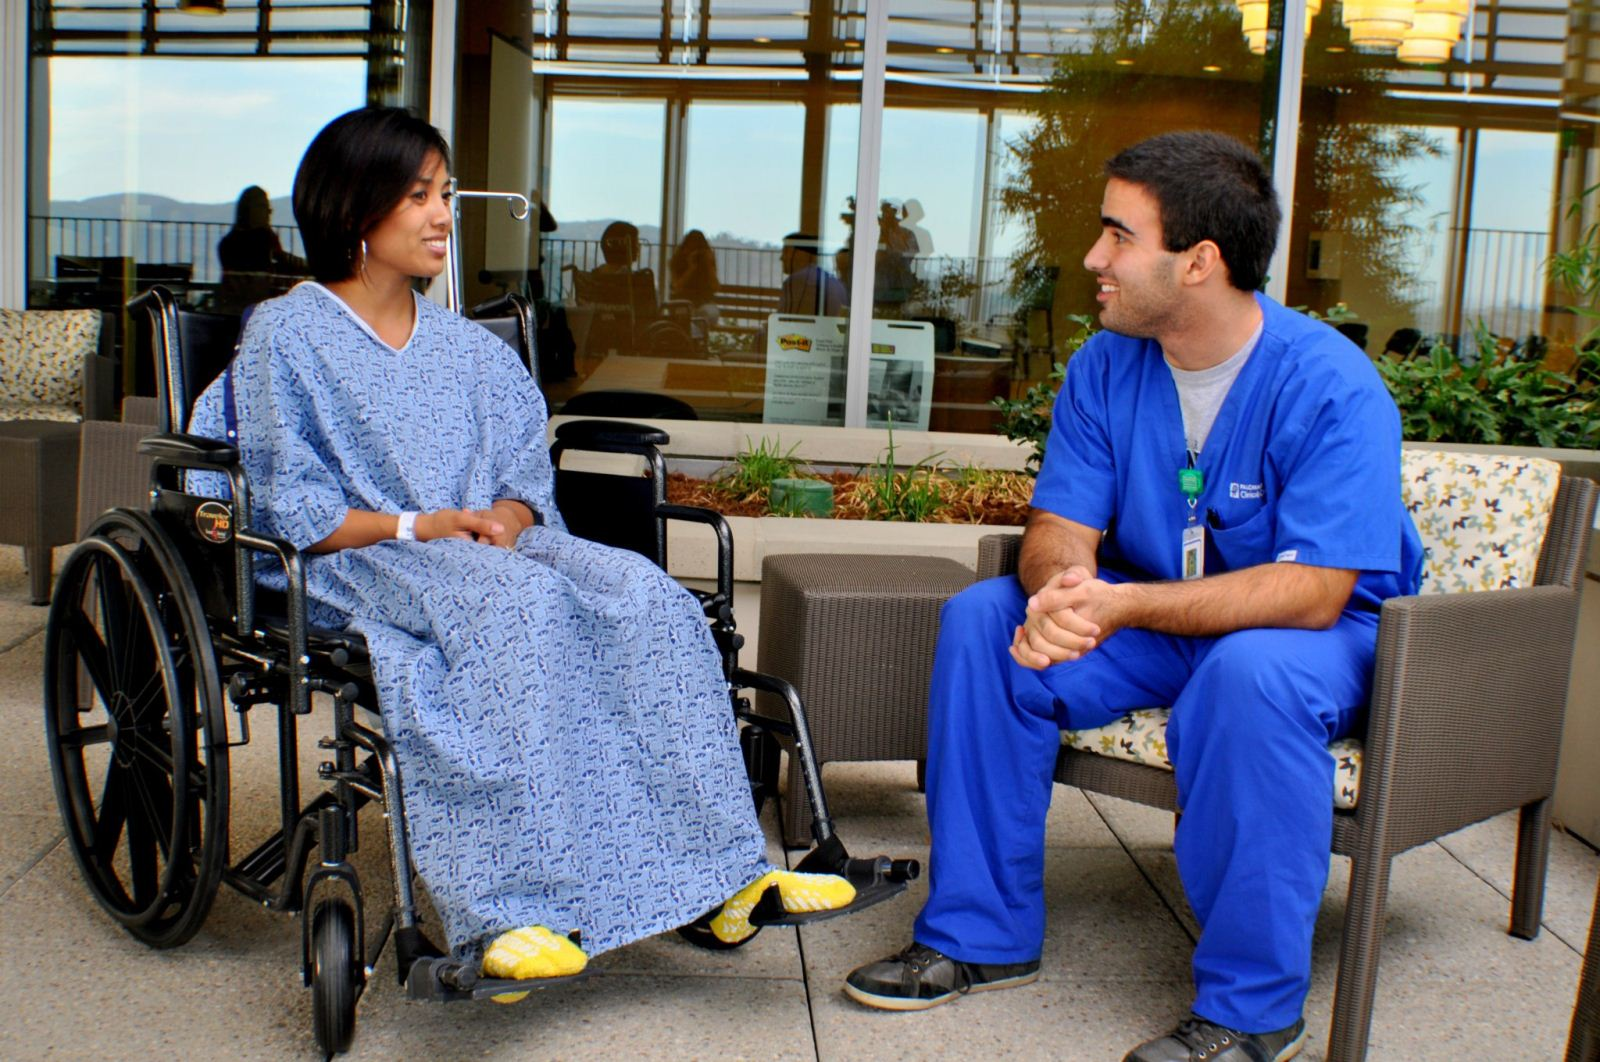 A intern talks to a patient in a hospital environment.